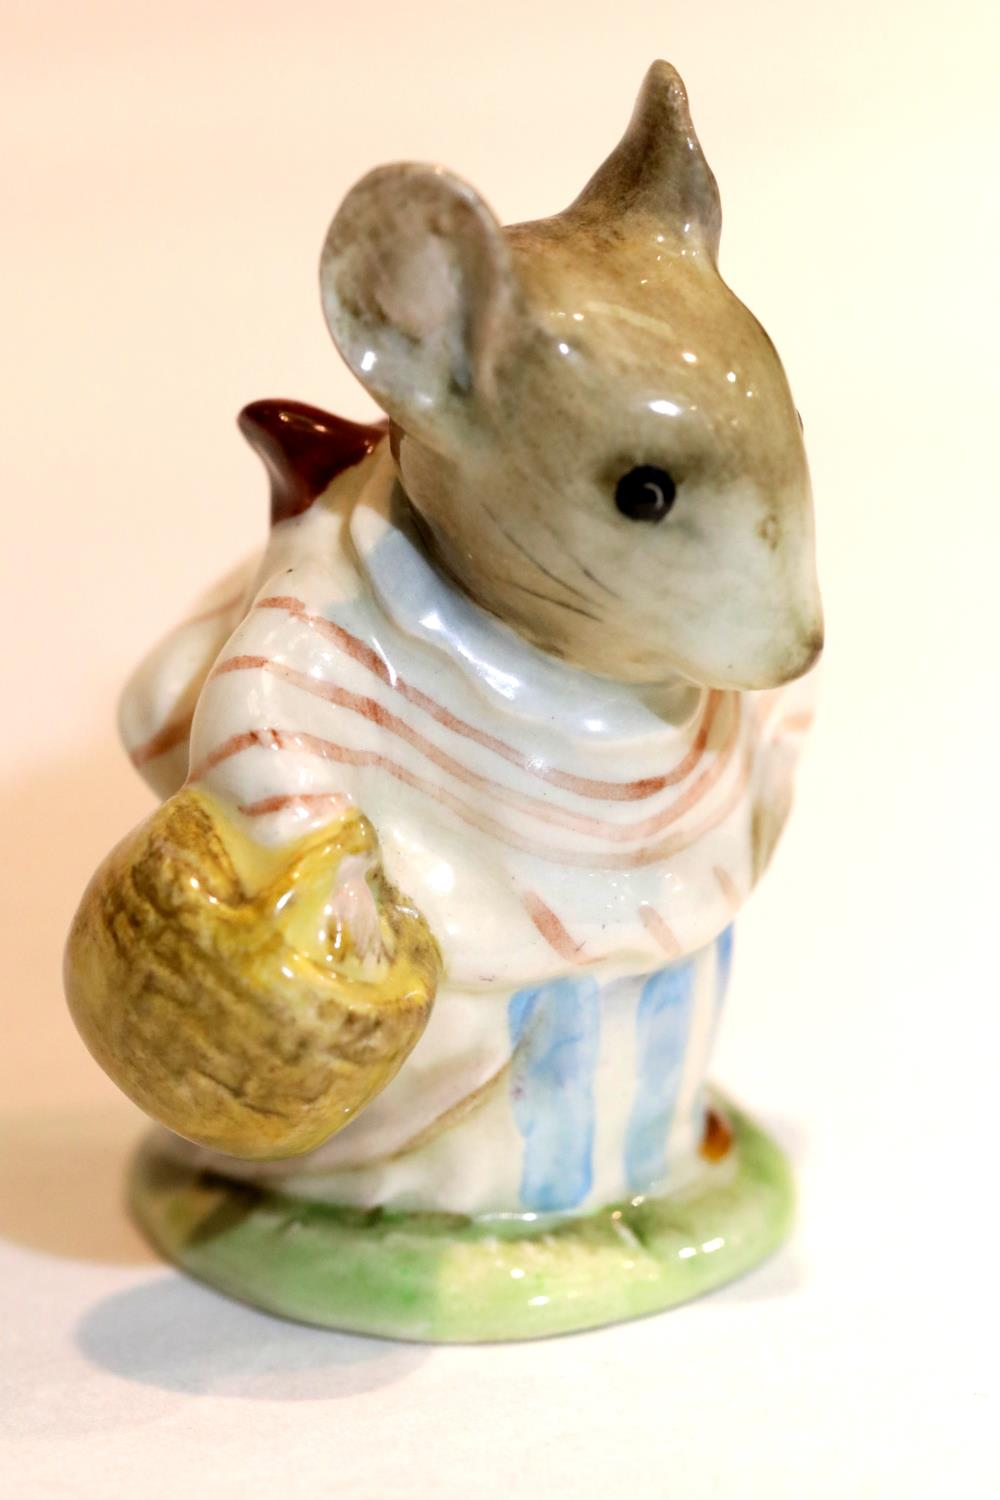 Beswick Beatrix Potter Mrs. Tittlemouse BP2b. P&P Group 1 (£14+VAT for the first lot and £1+VAT